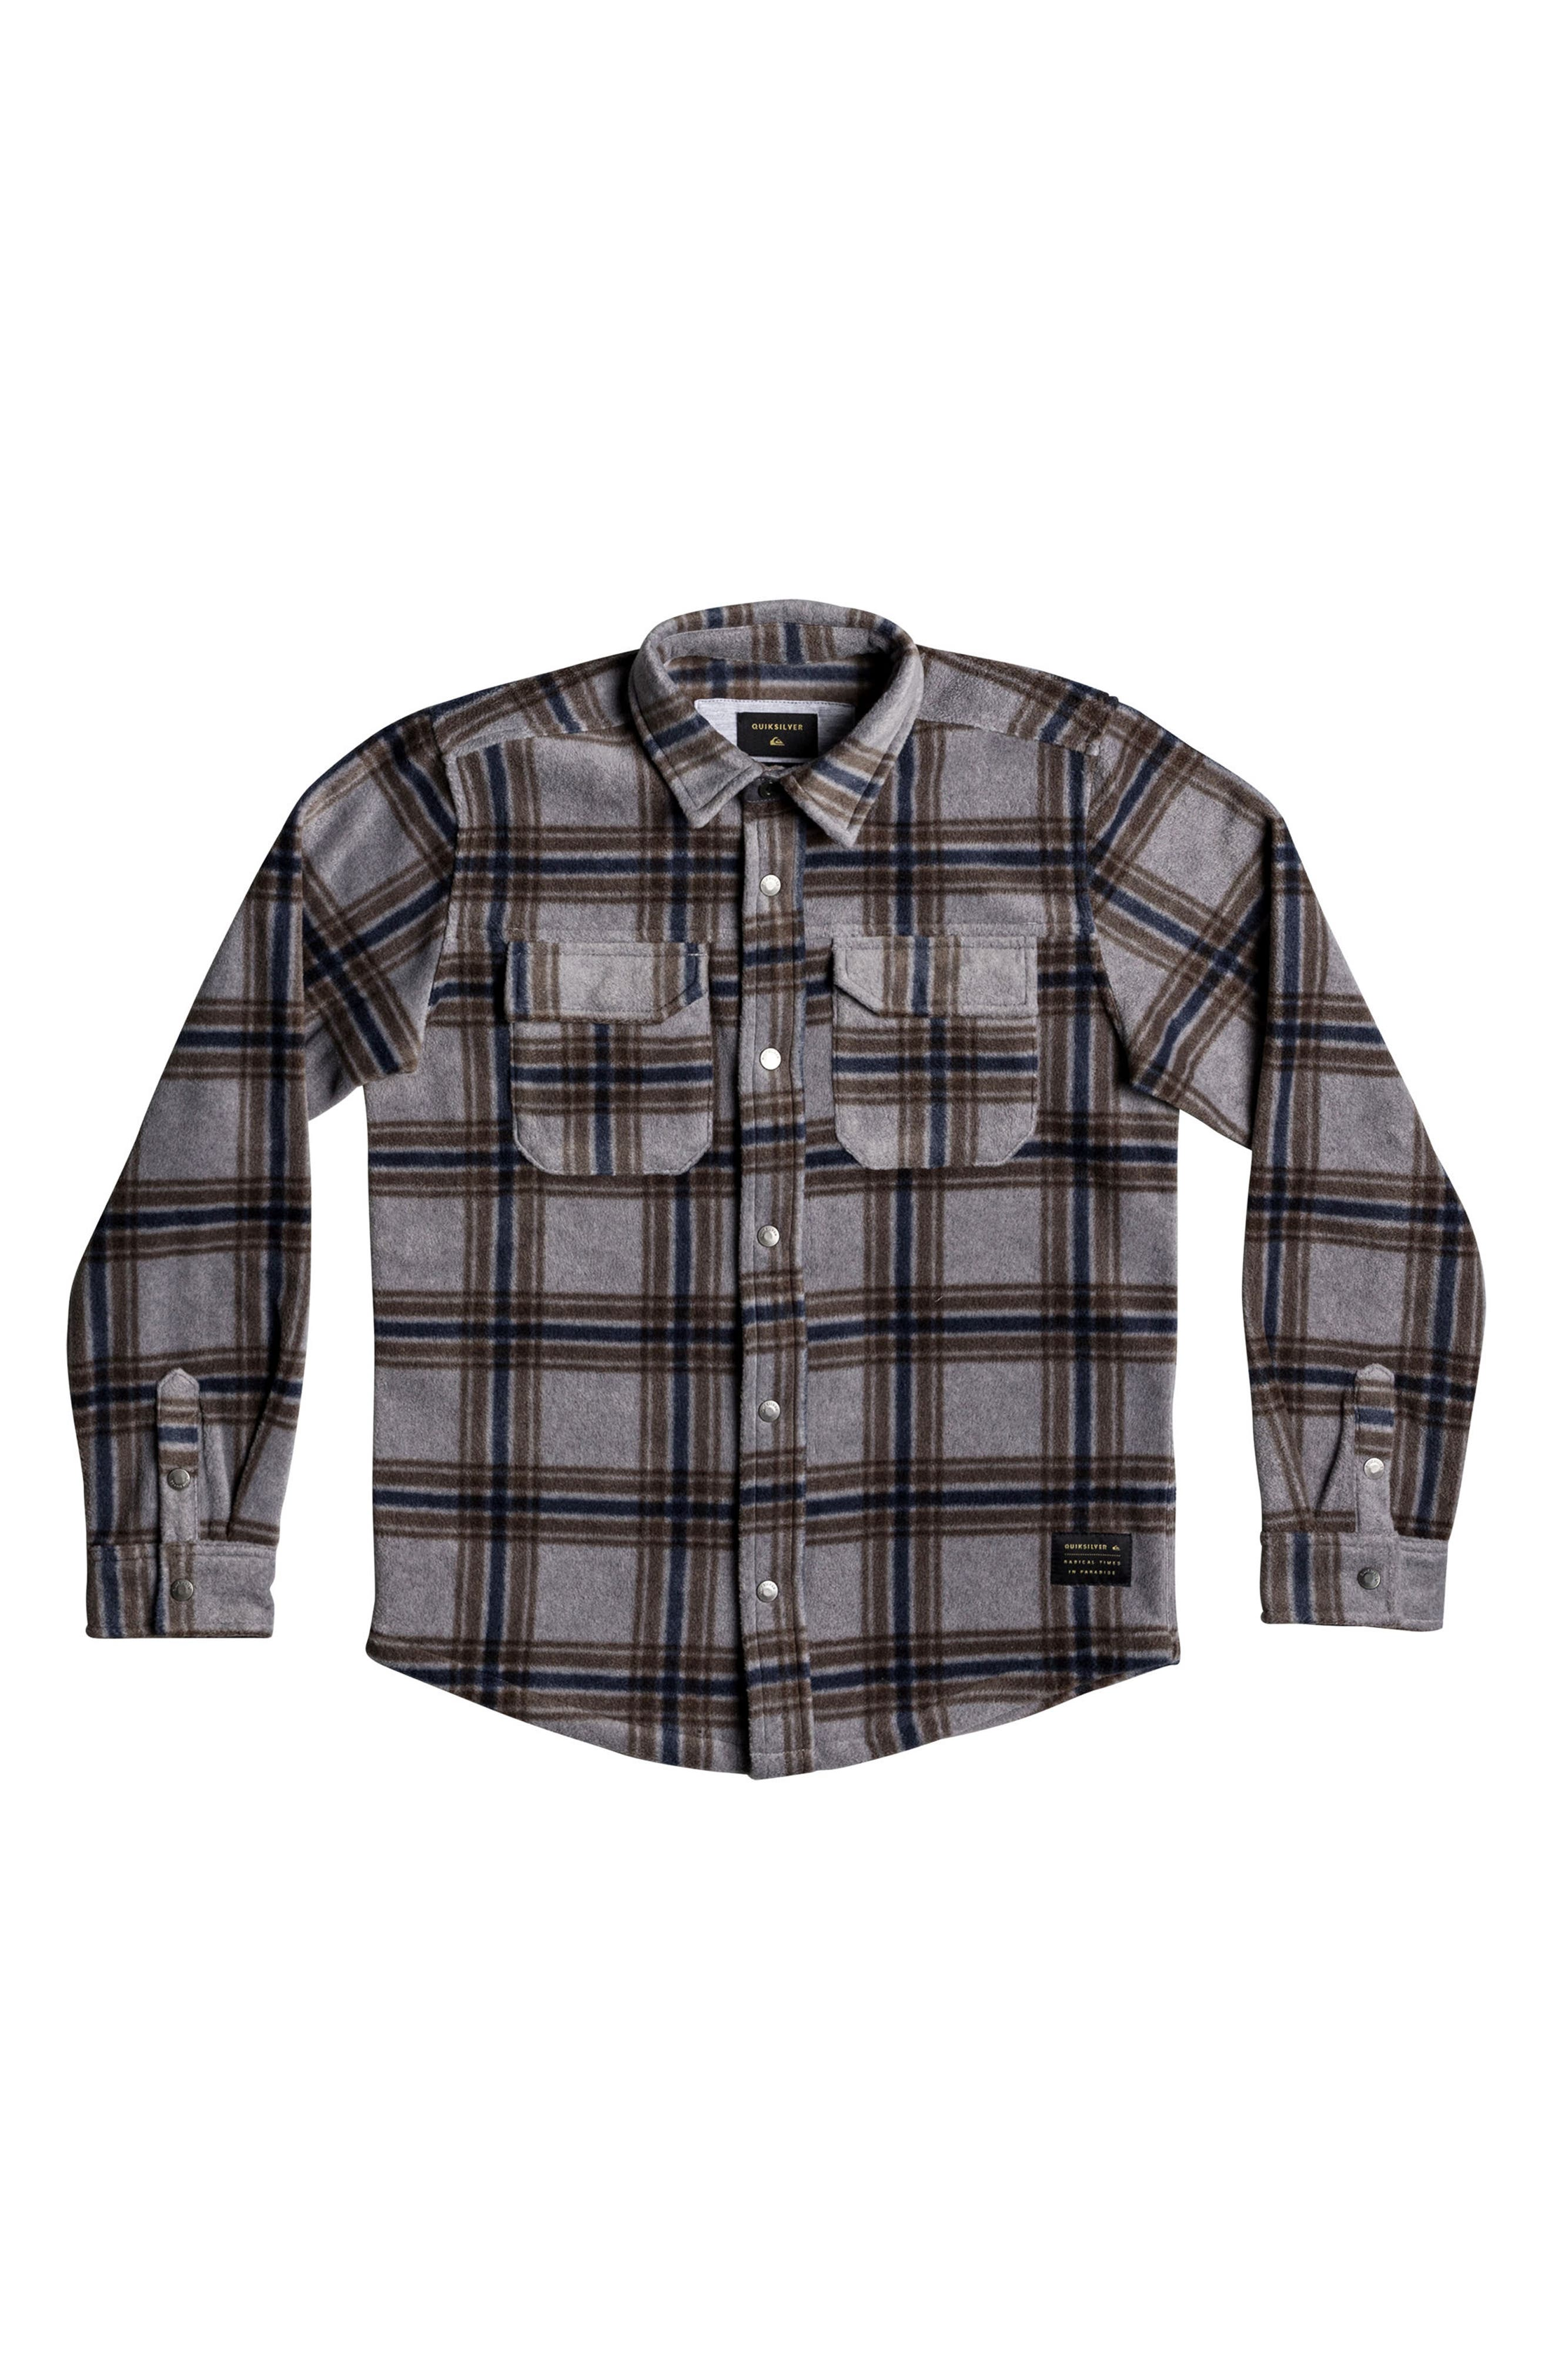 Surf Days Plaid Shirt,                             Main thumbnail 1, color,                             Medium Grey Heather Check